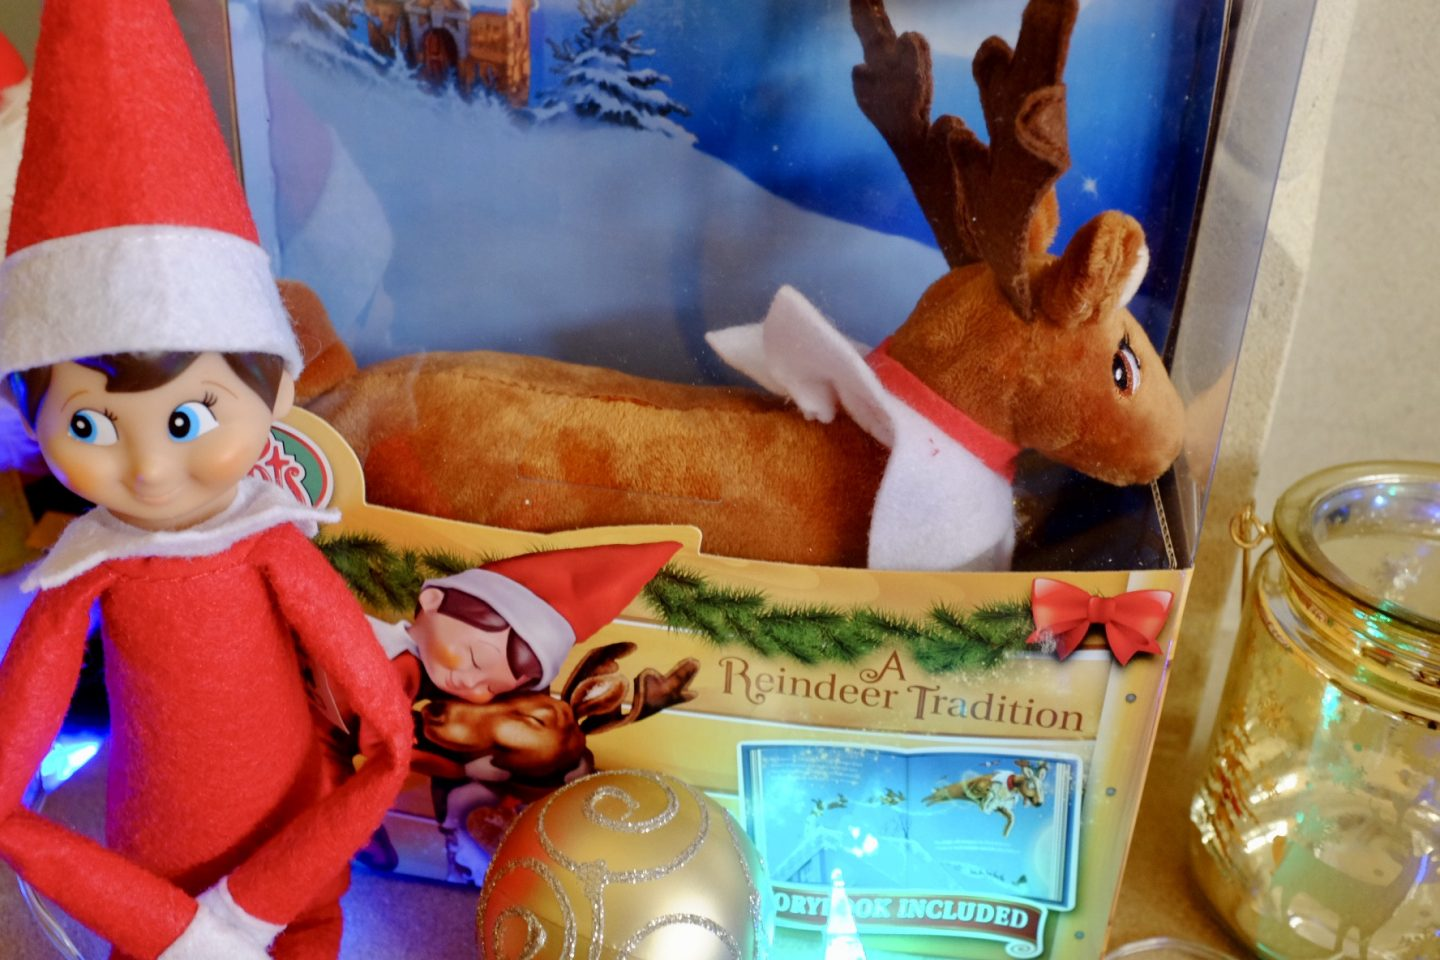 Reindeer Tradition Box - Elf arrival ideas